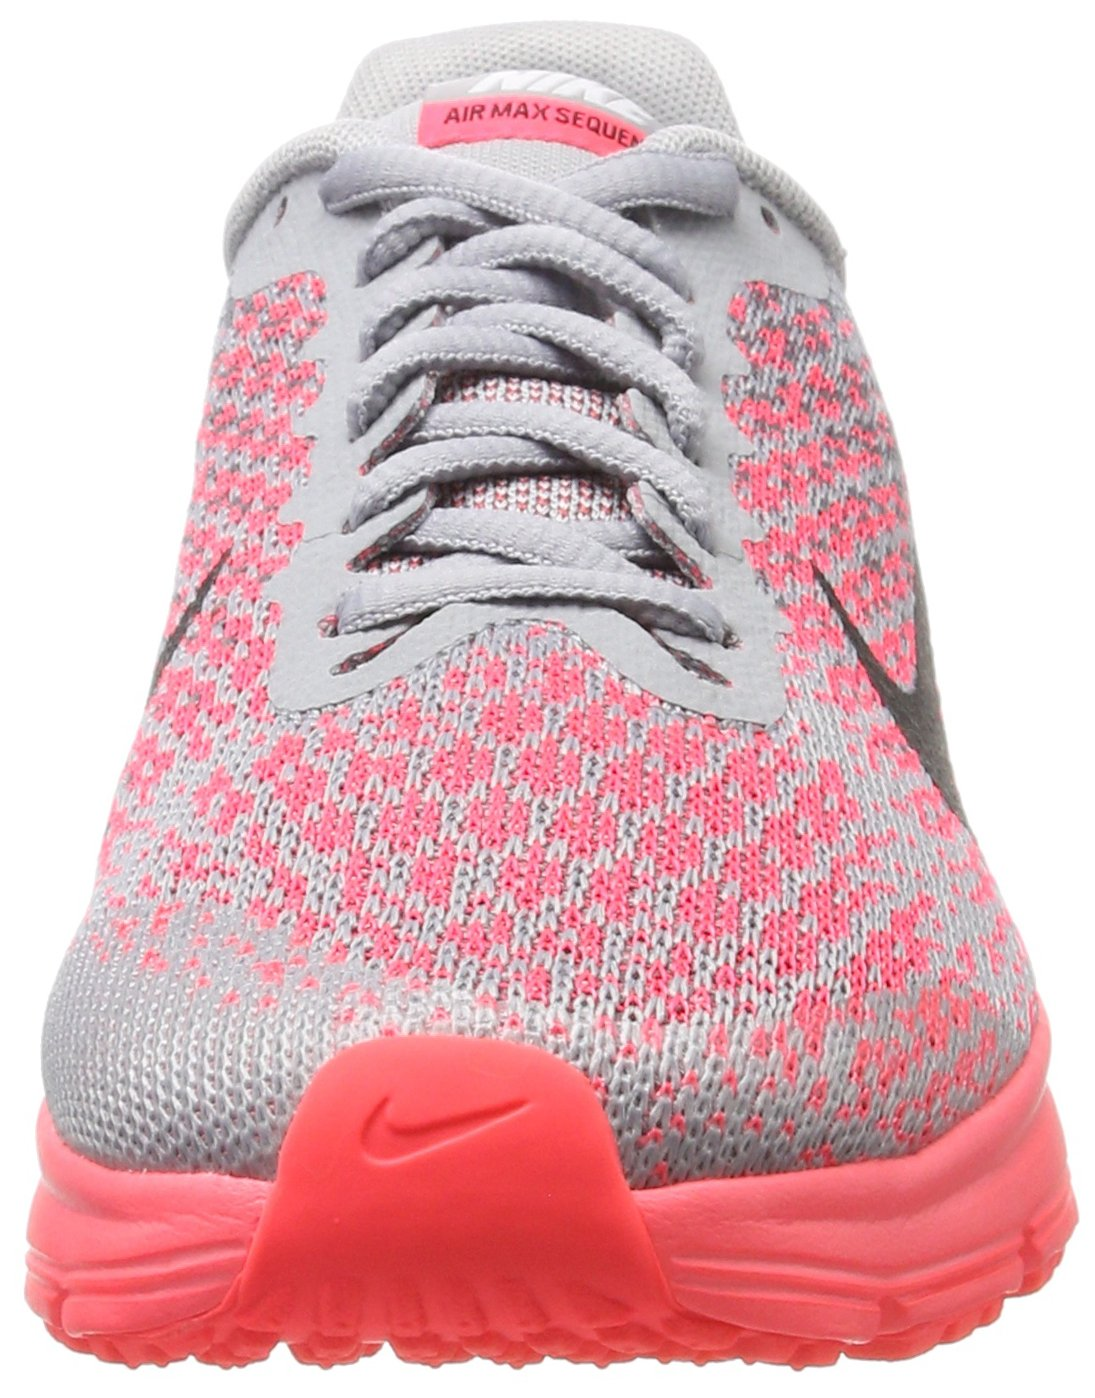 NIKE Air Max Sequent 2 Big Kids Style : 869994 by Nike (Image #4)